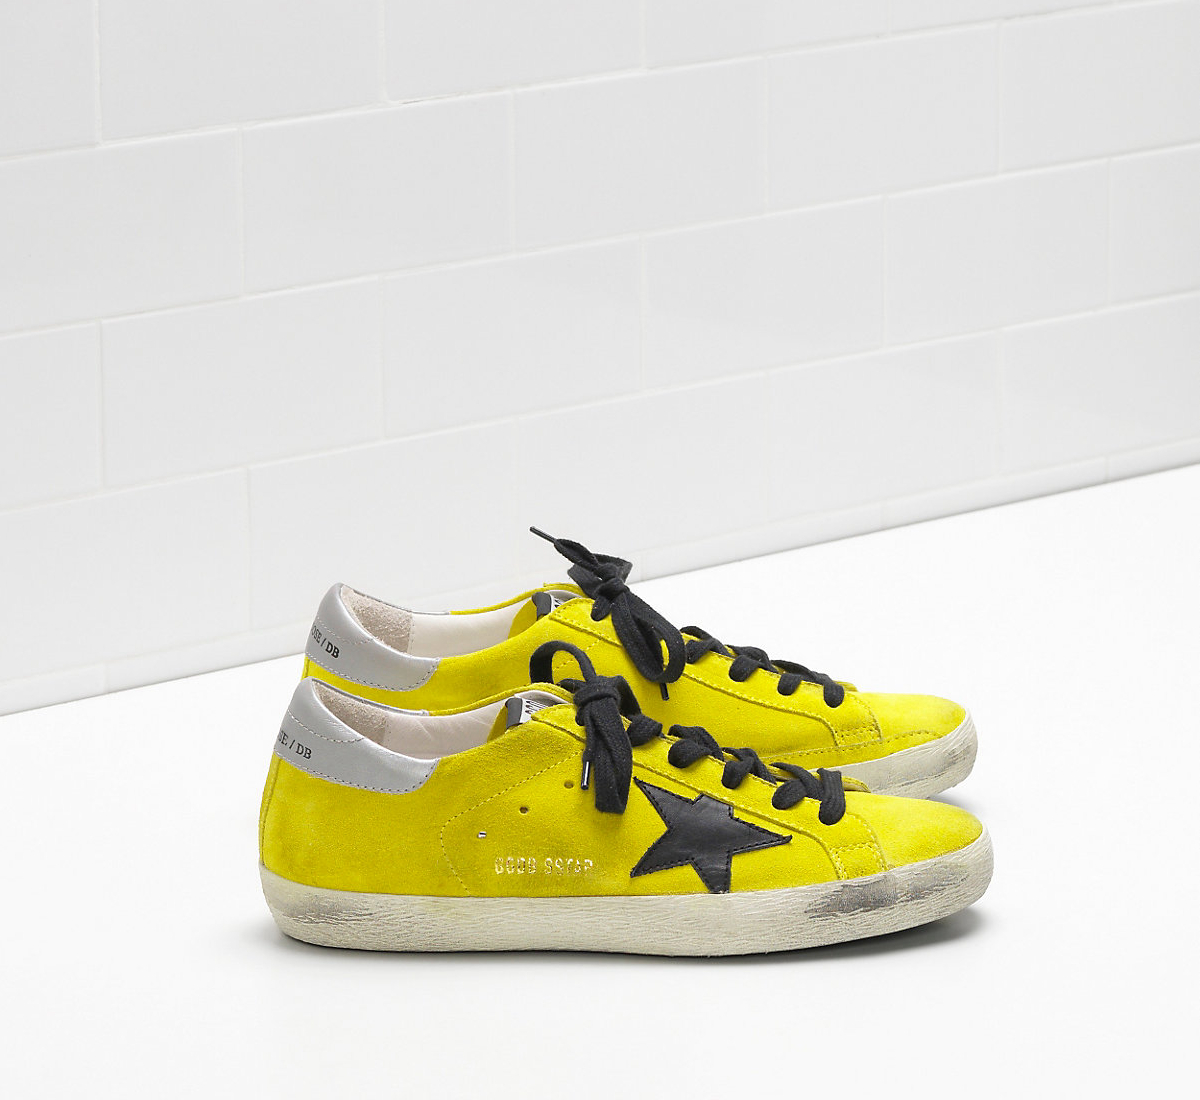 Golden Goose DB Super Star Sneakers In Calf Suede With Black Leather Star